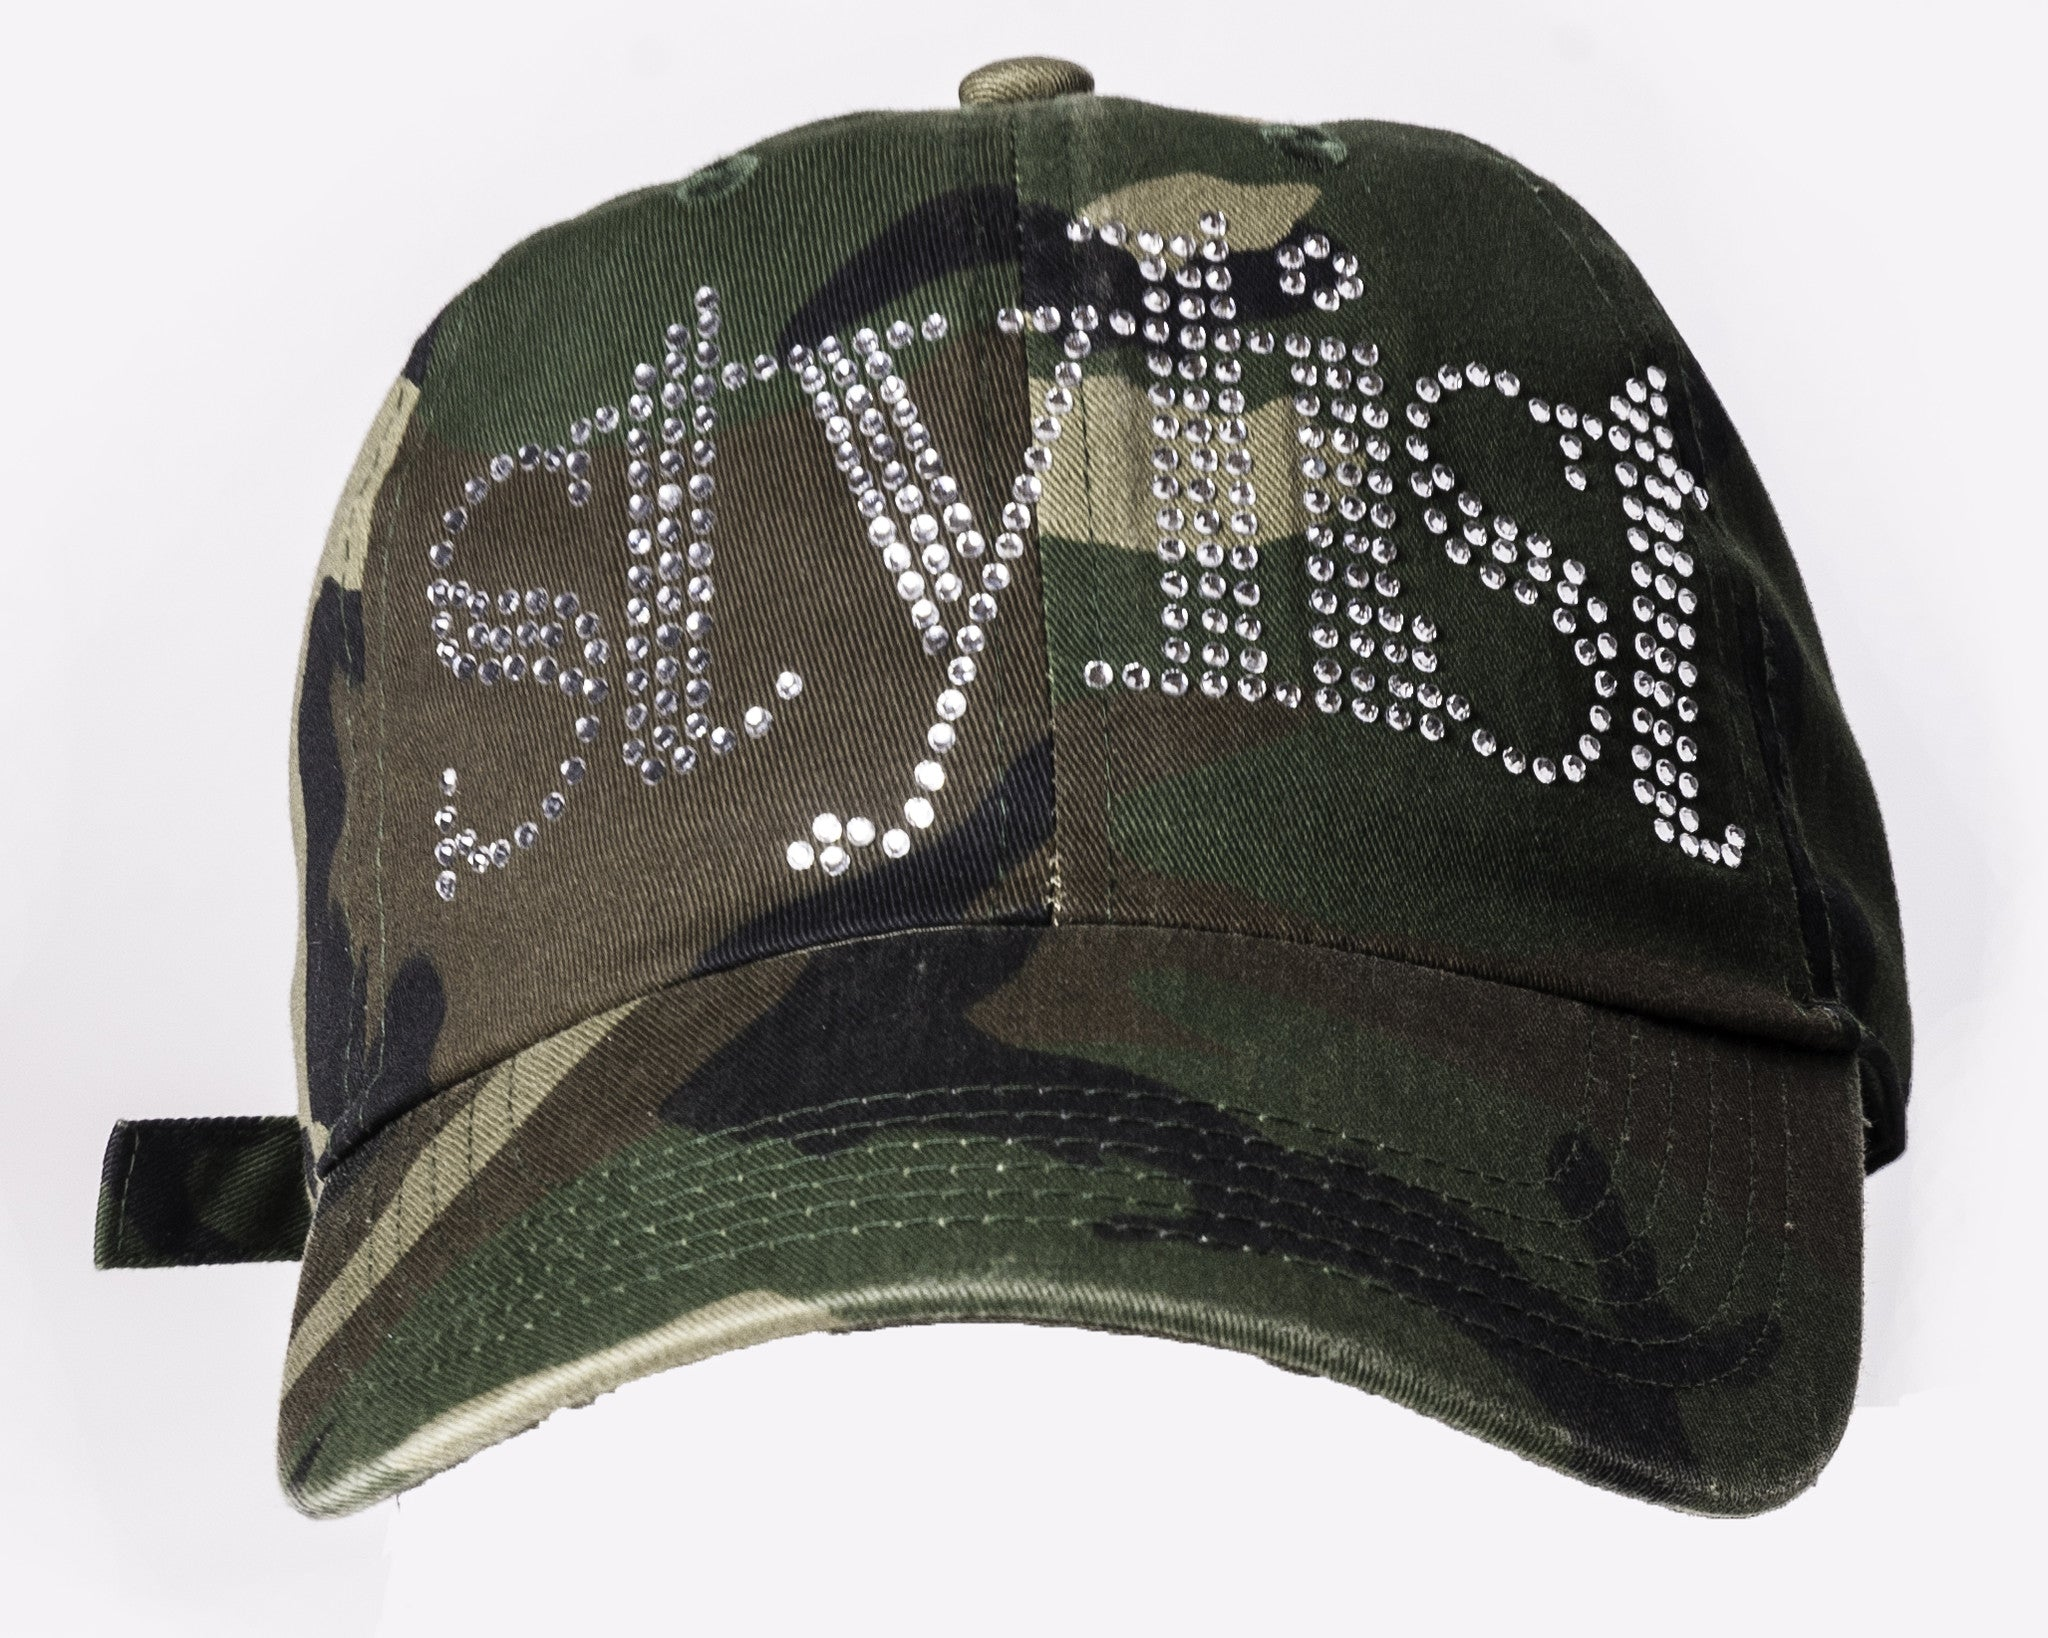 CAMO BLING STYLIST BASEBALL CAP